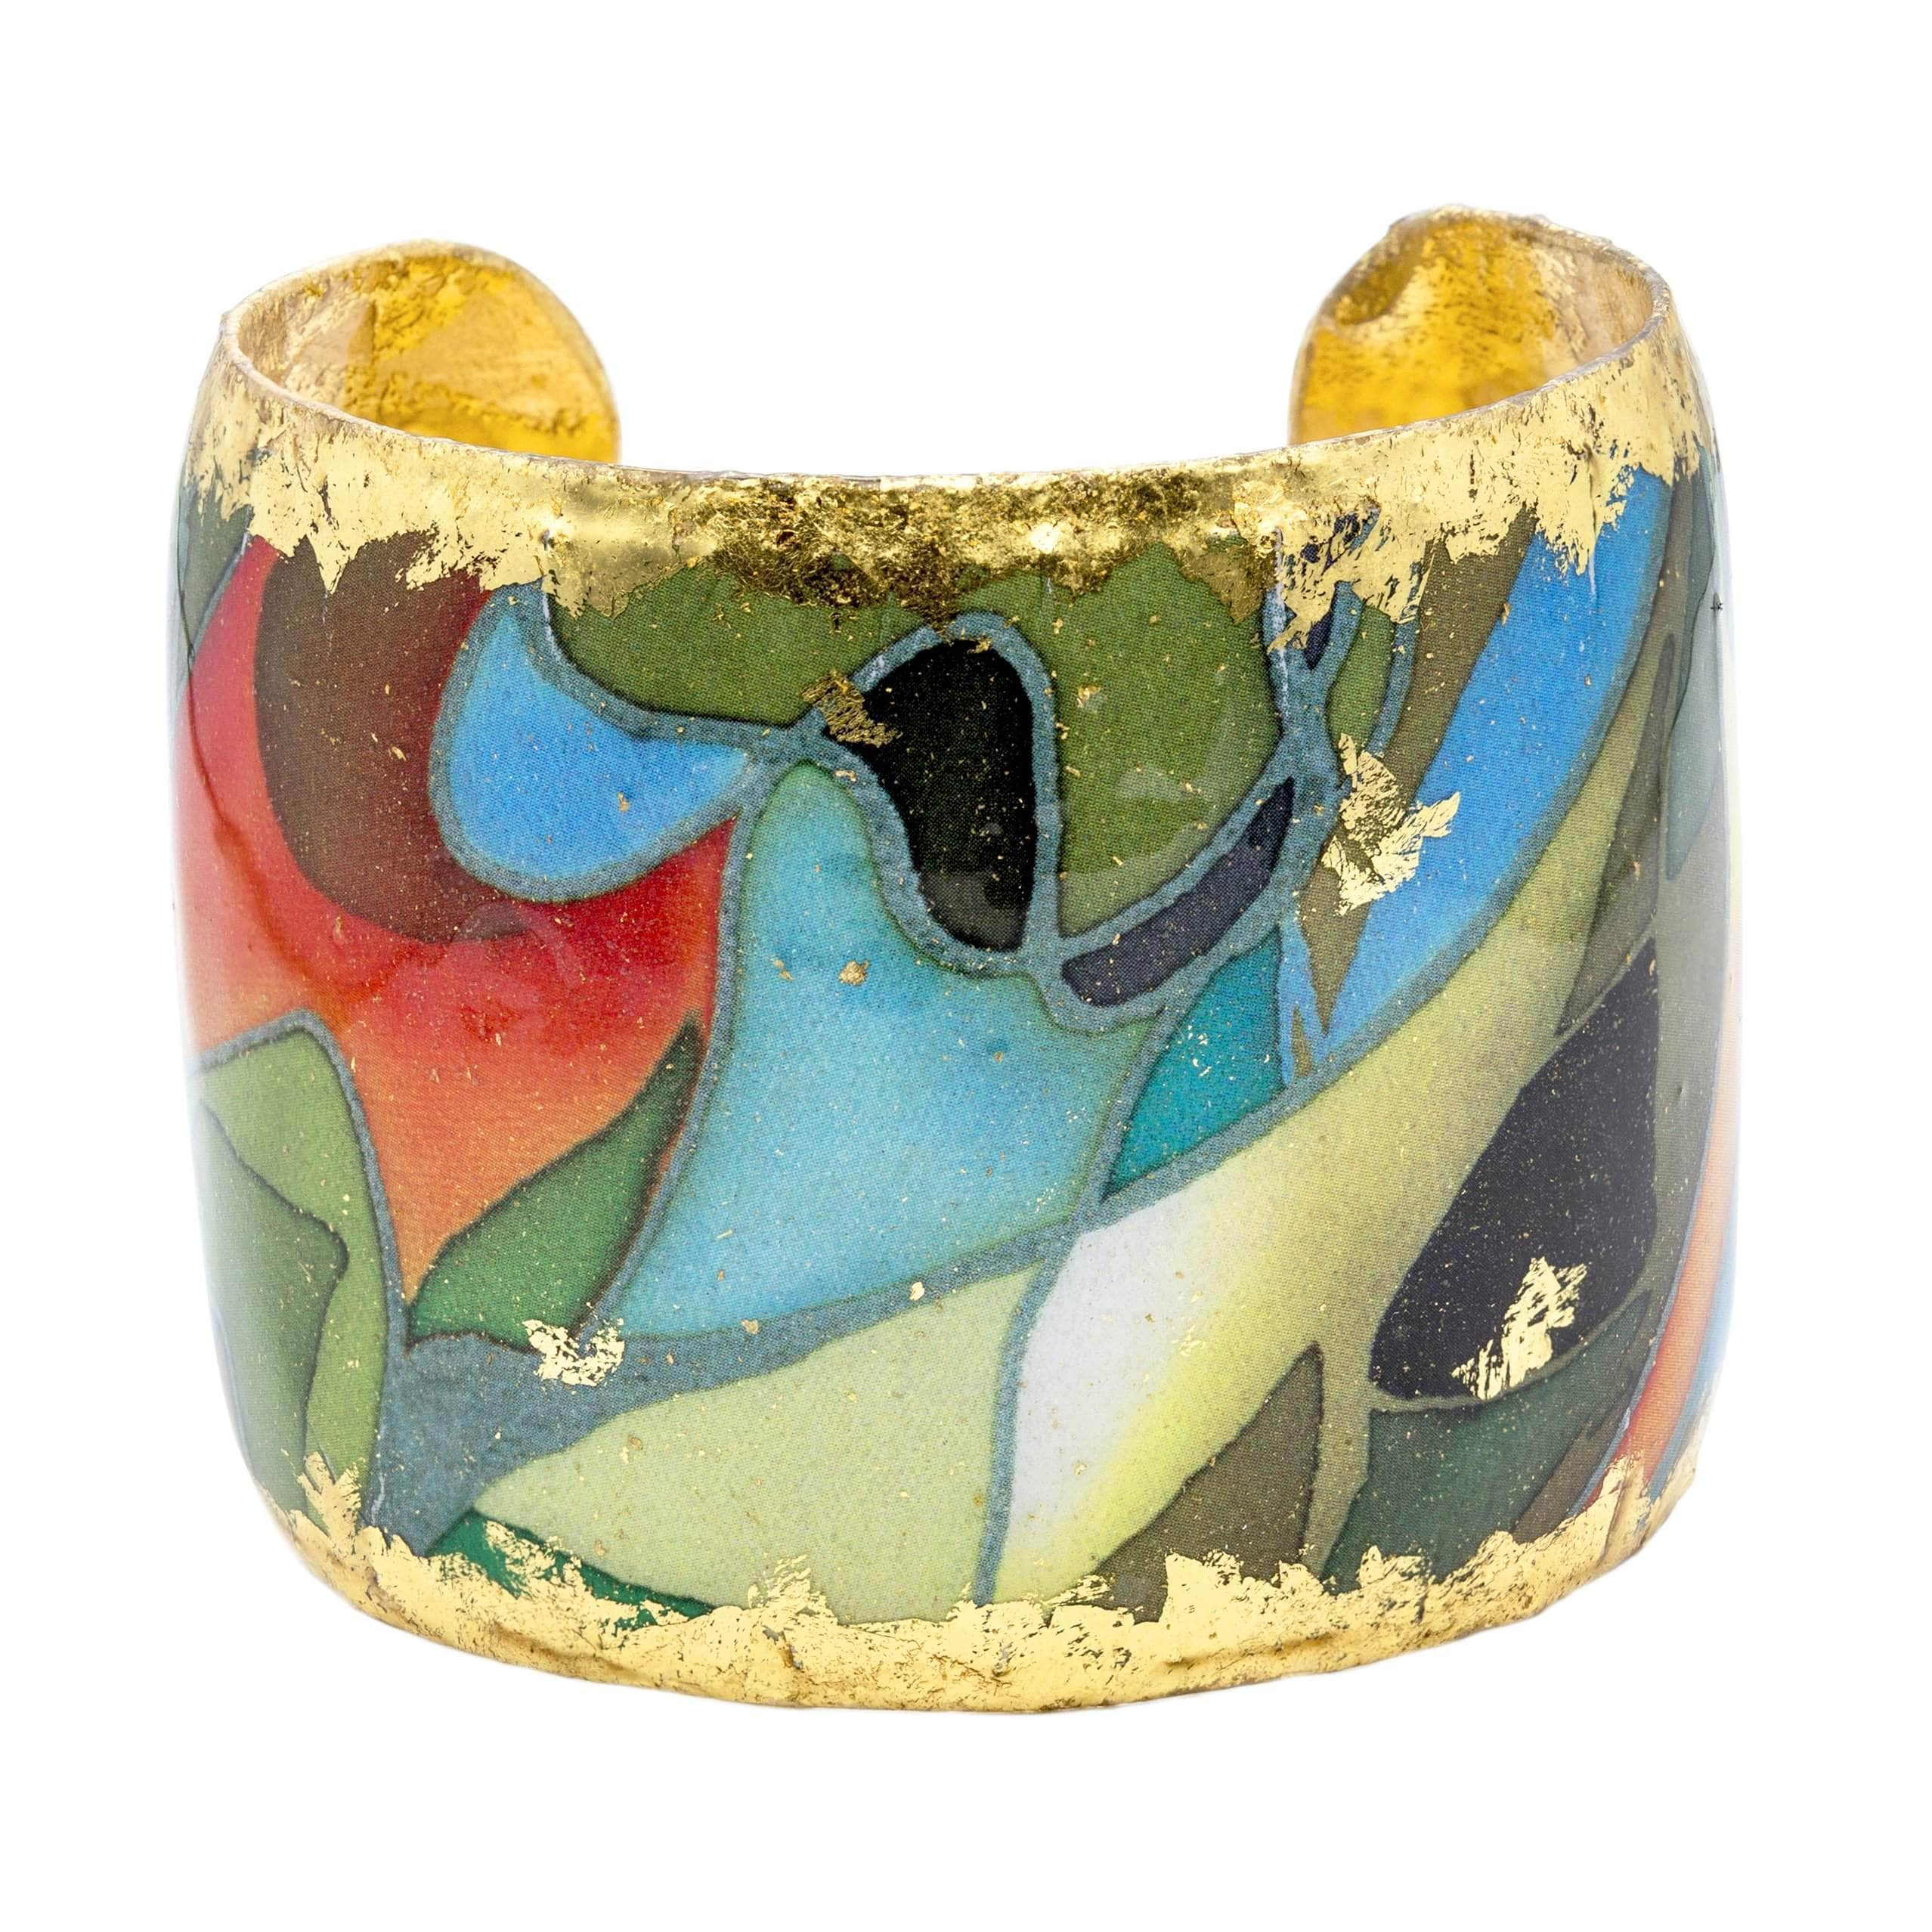 "Rainforest 2"" Gold Cuff - MG103-Evocateur-Renee Taylor Gallery"